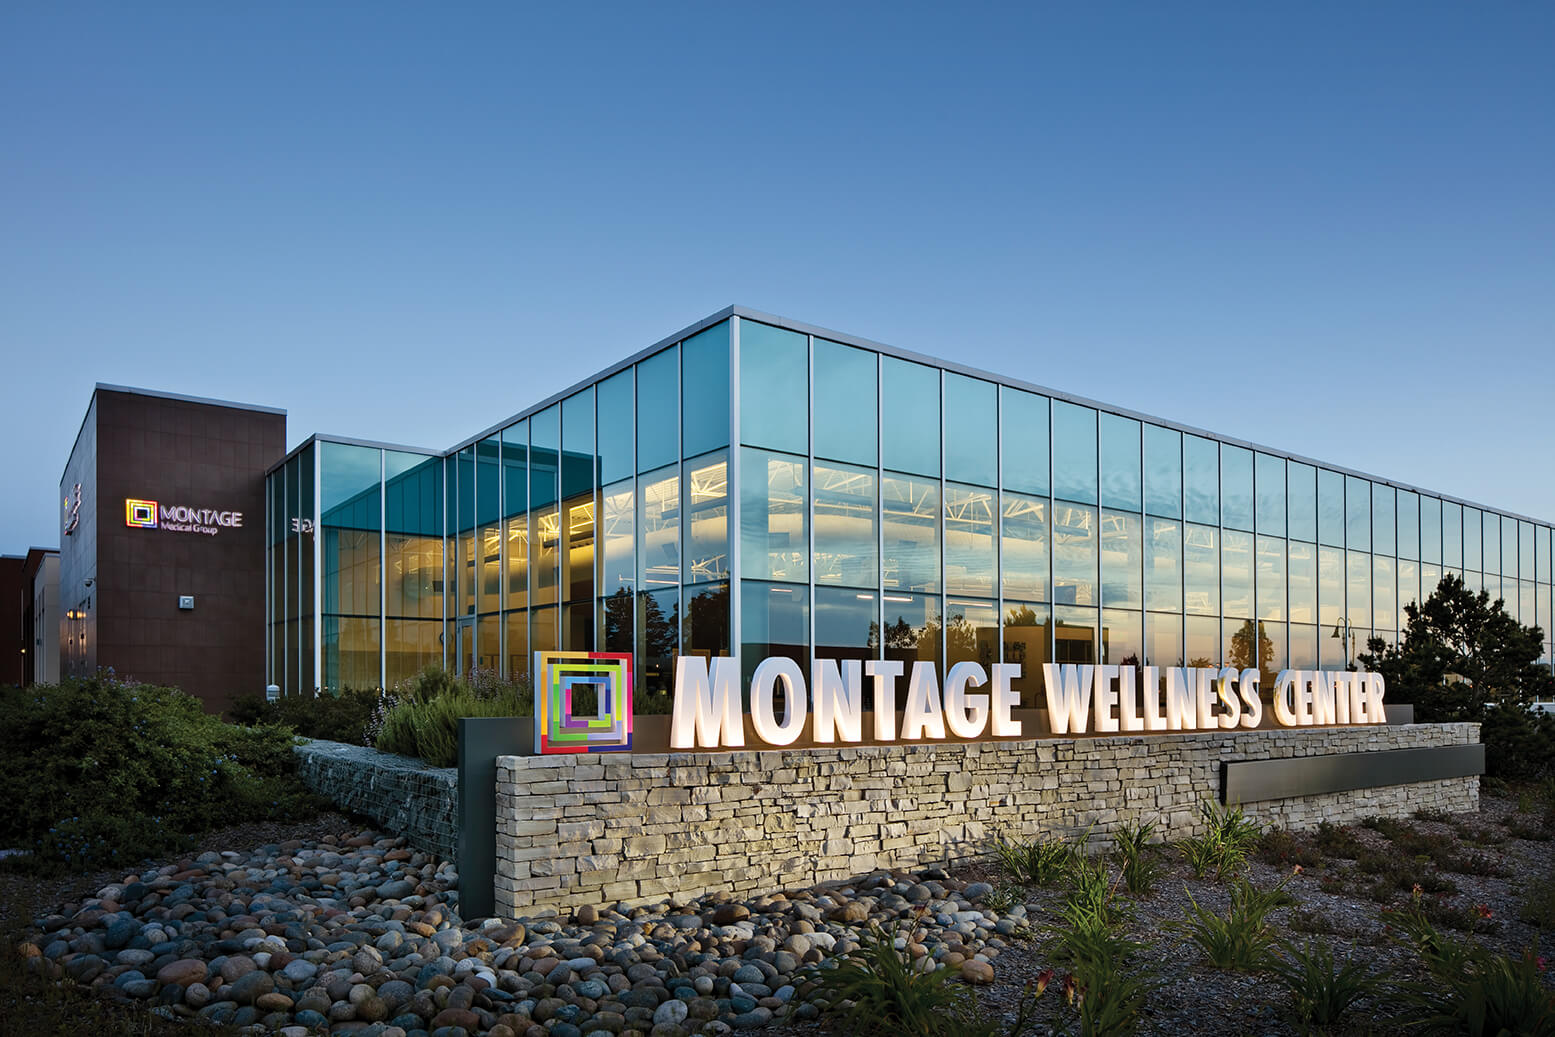 Montage Jobs Montage Wellness Center Marina Ca Healthplex Associates